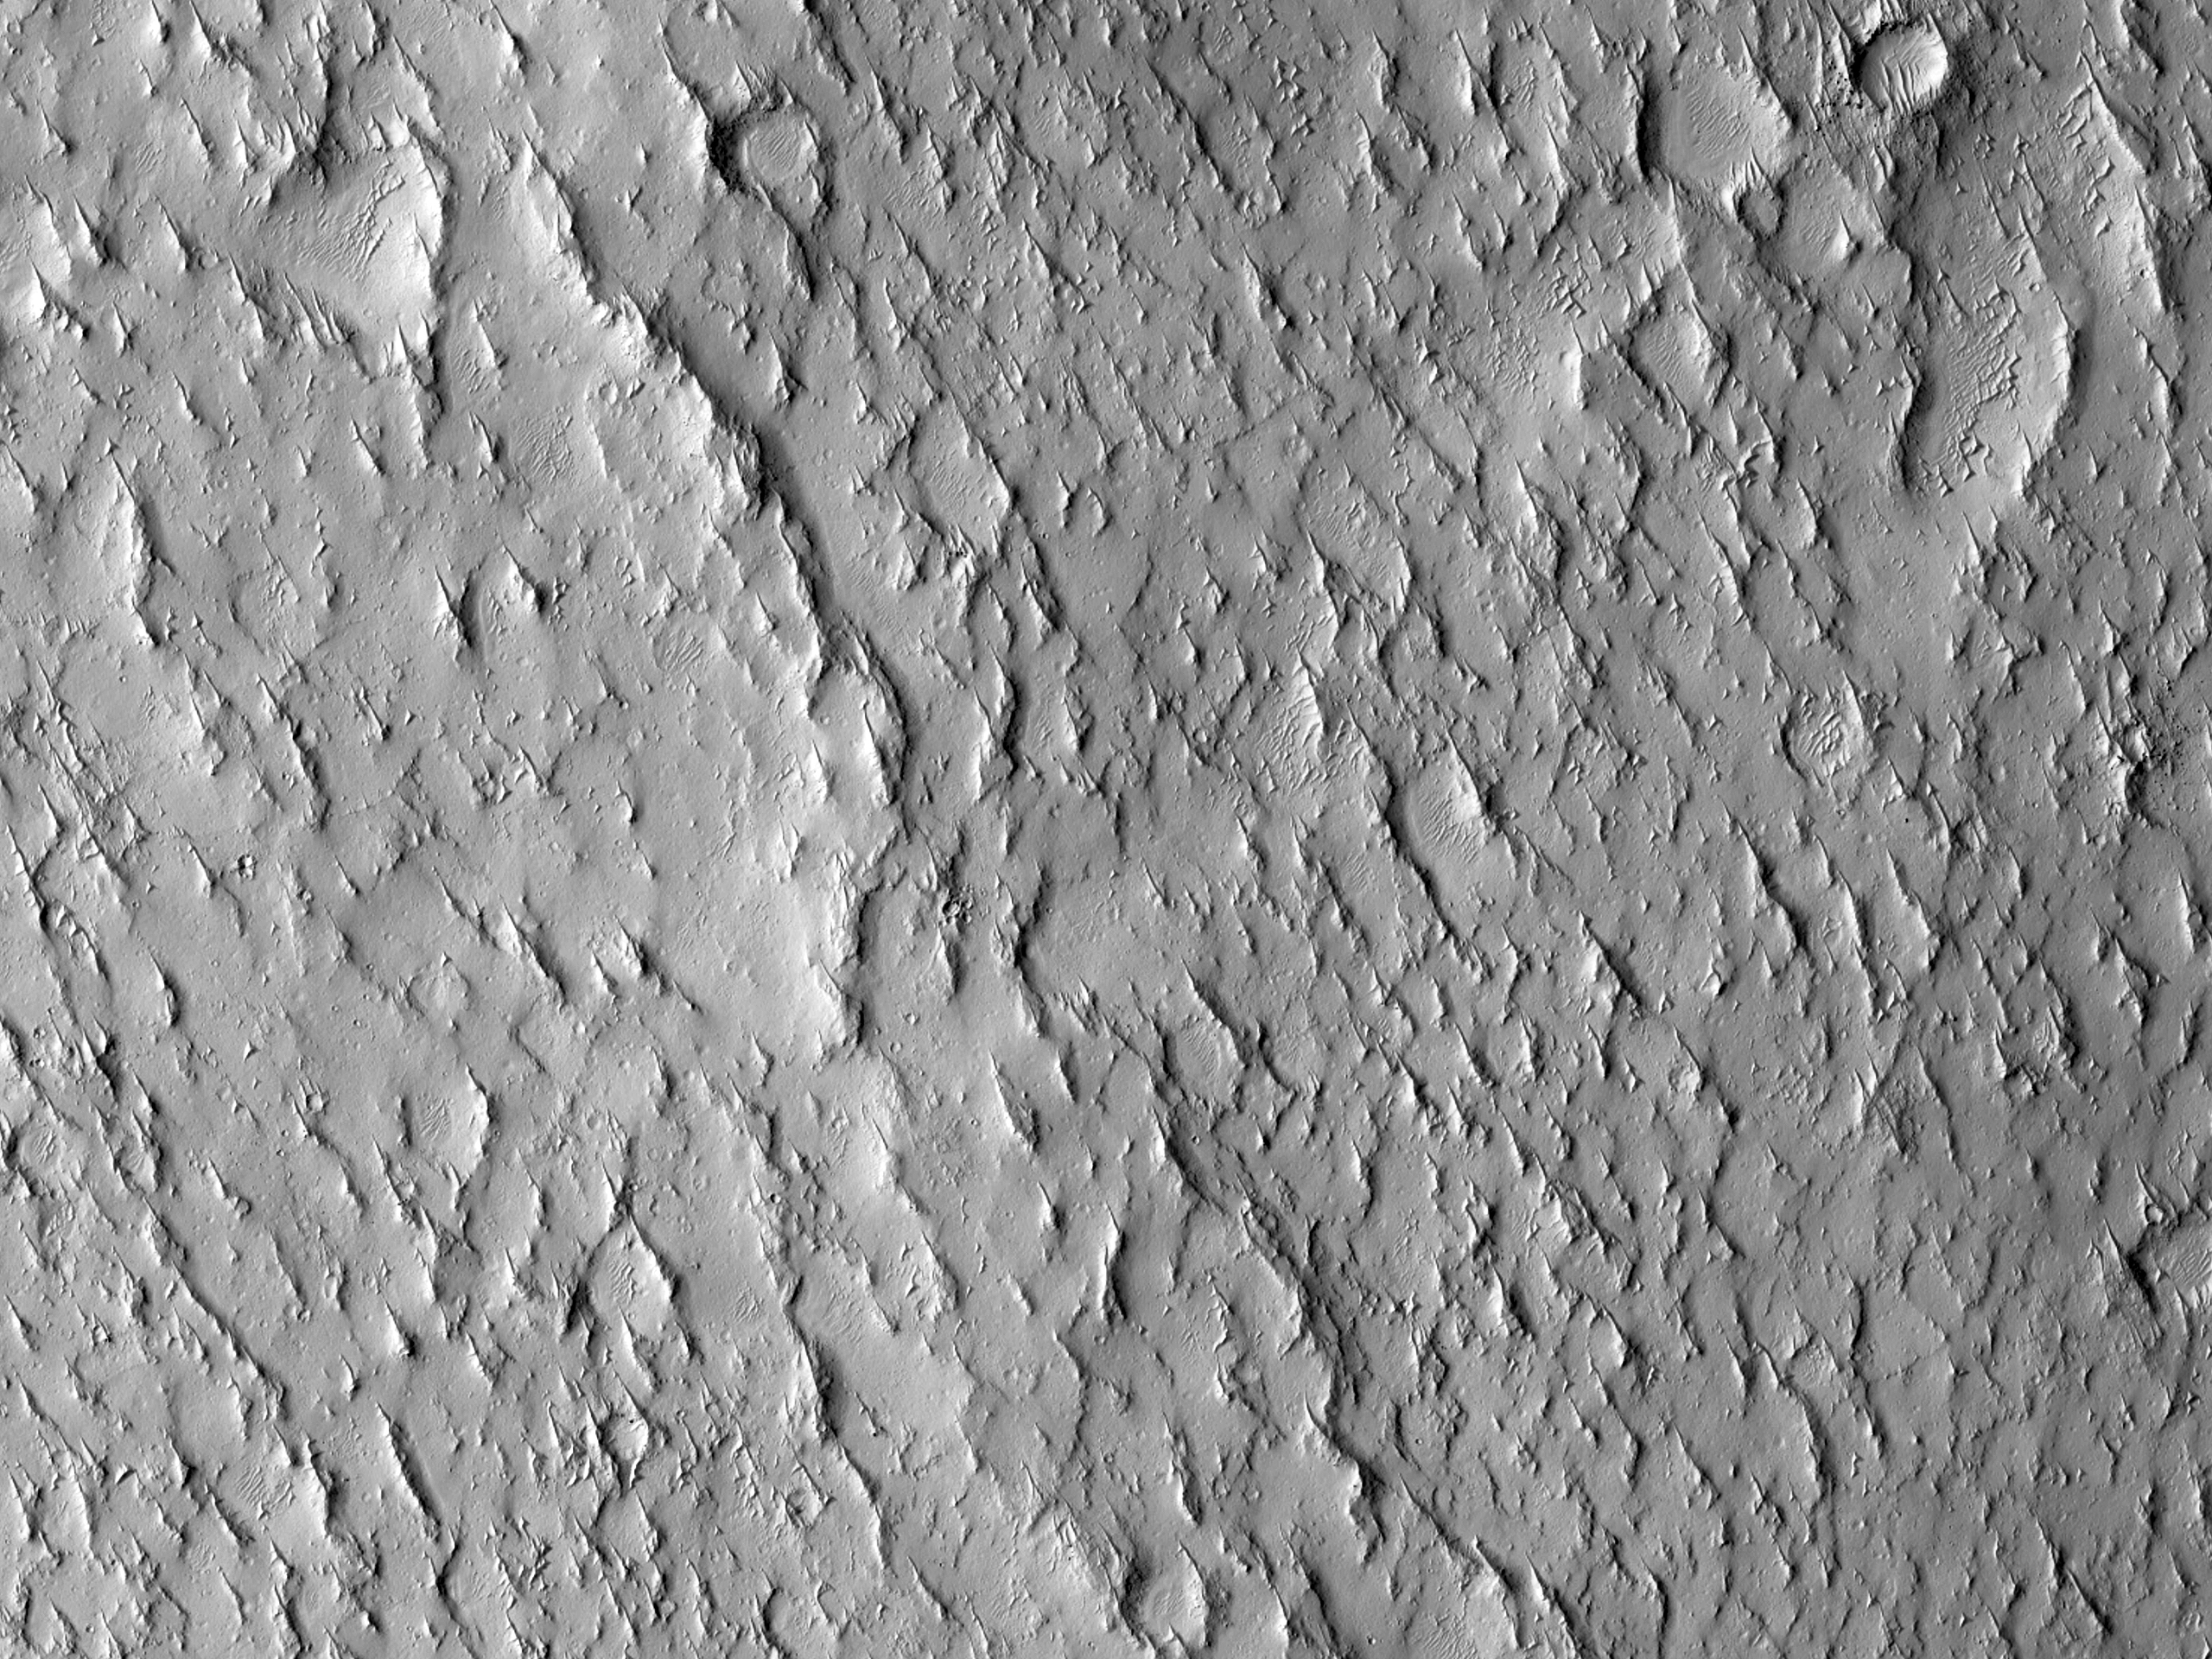 A Wrinkle Ridge in Crater Floor Material